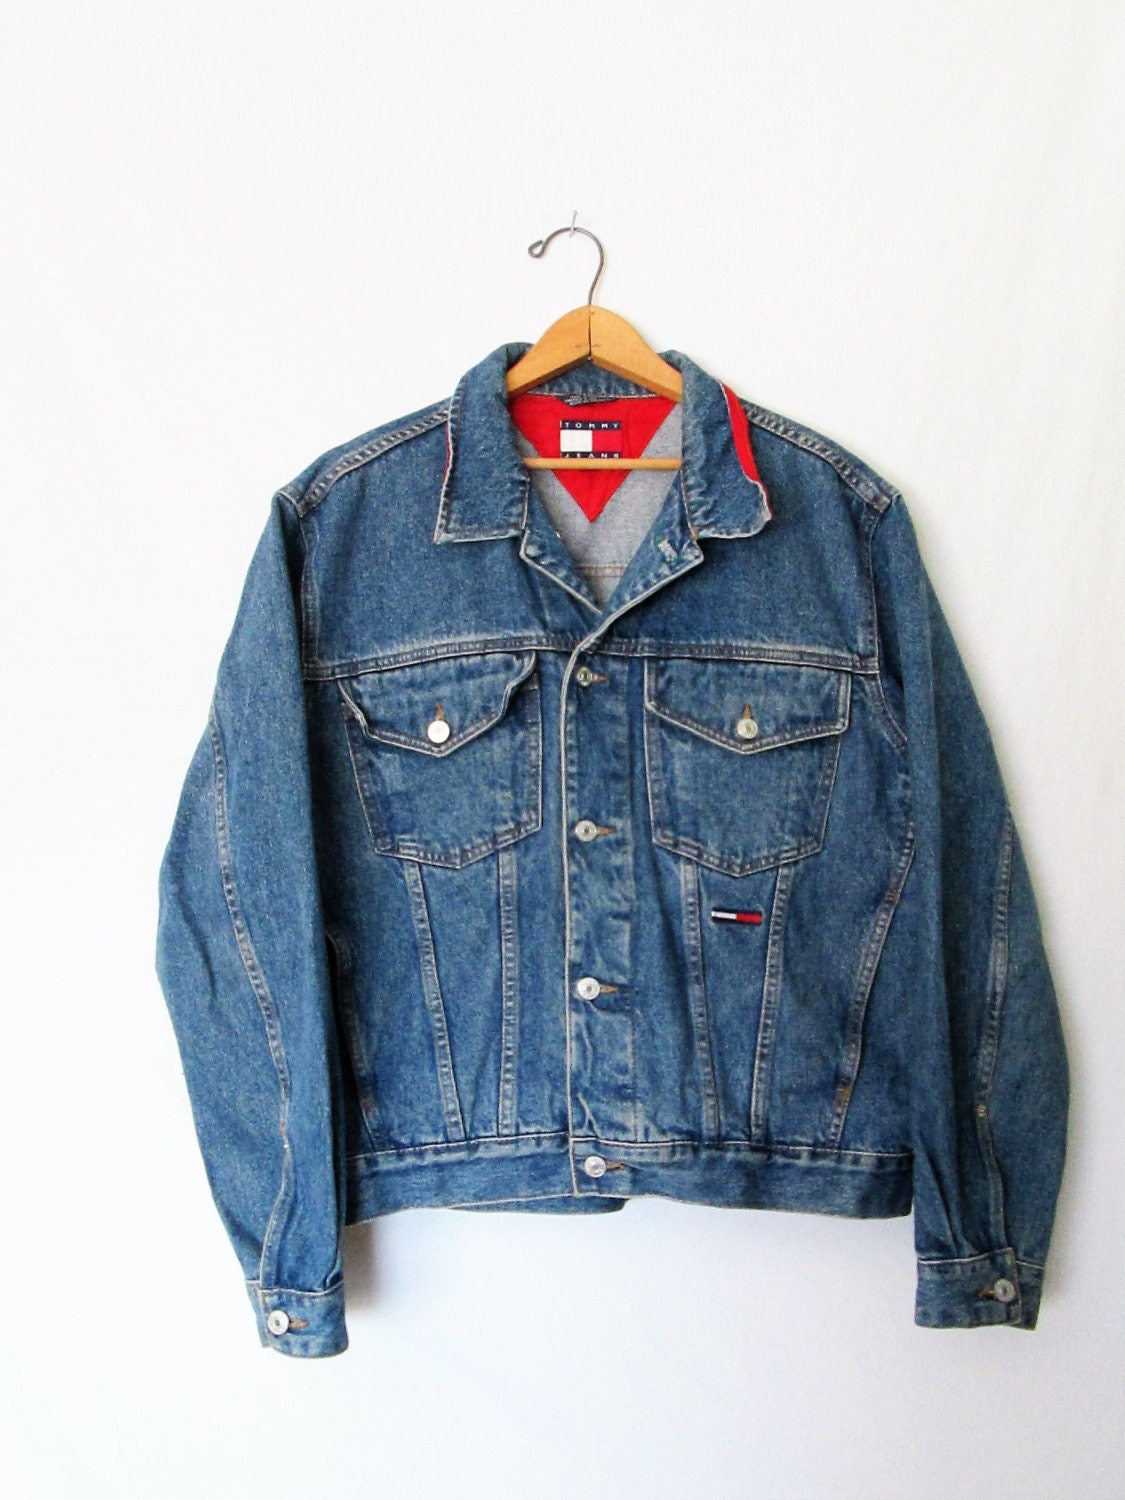 Vintage 1990s Tommy Hilfiger Denim Jacket